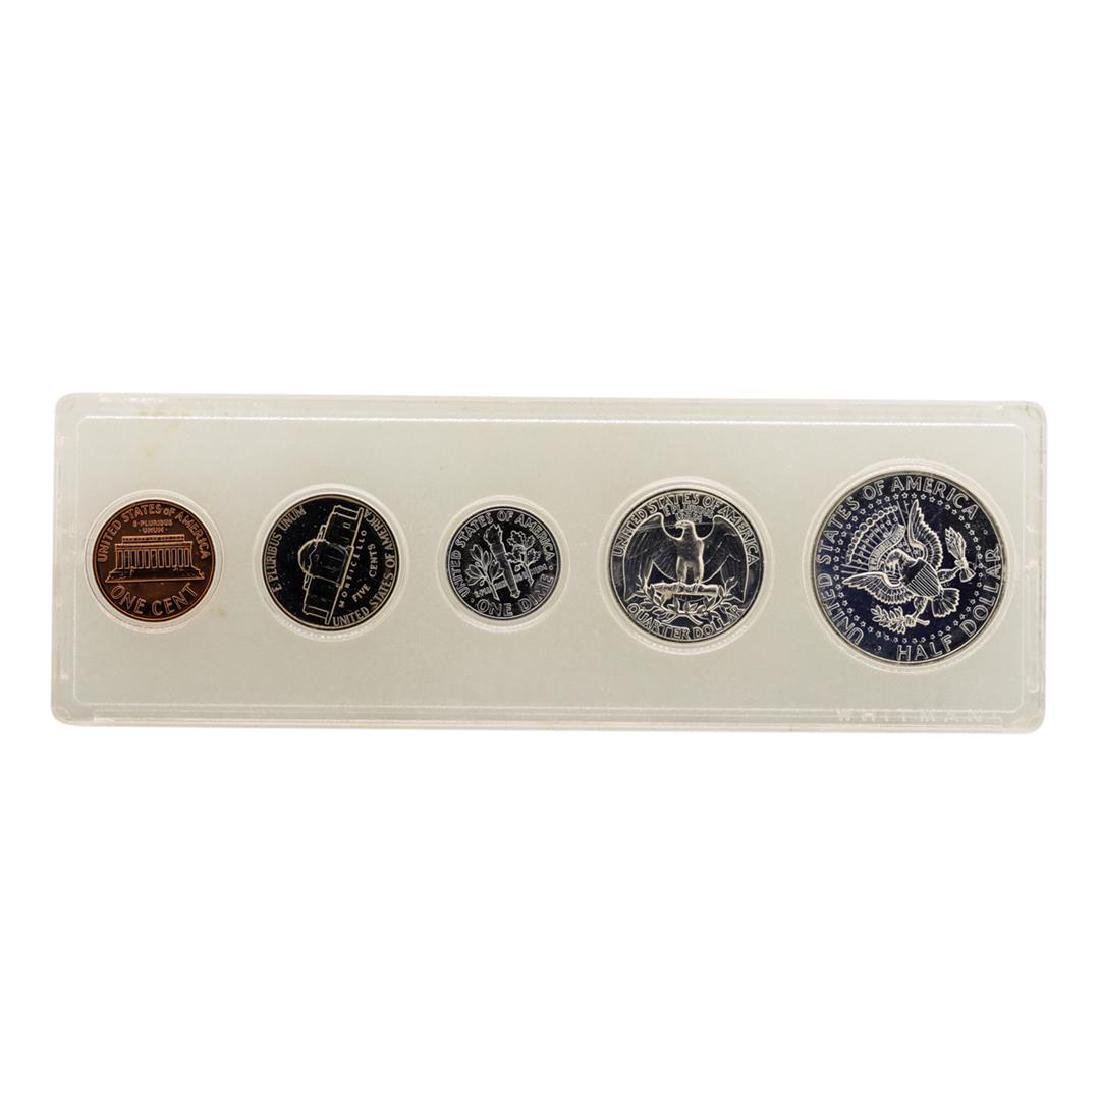 1964 (5) Coin Proof Set - 2